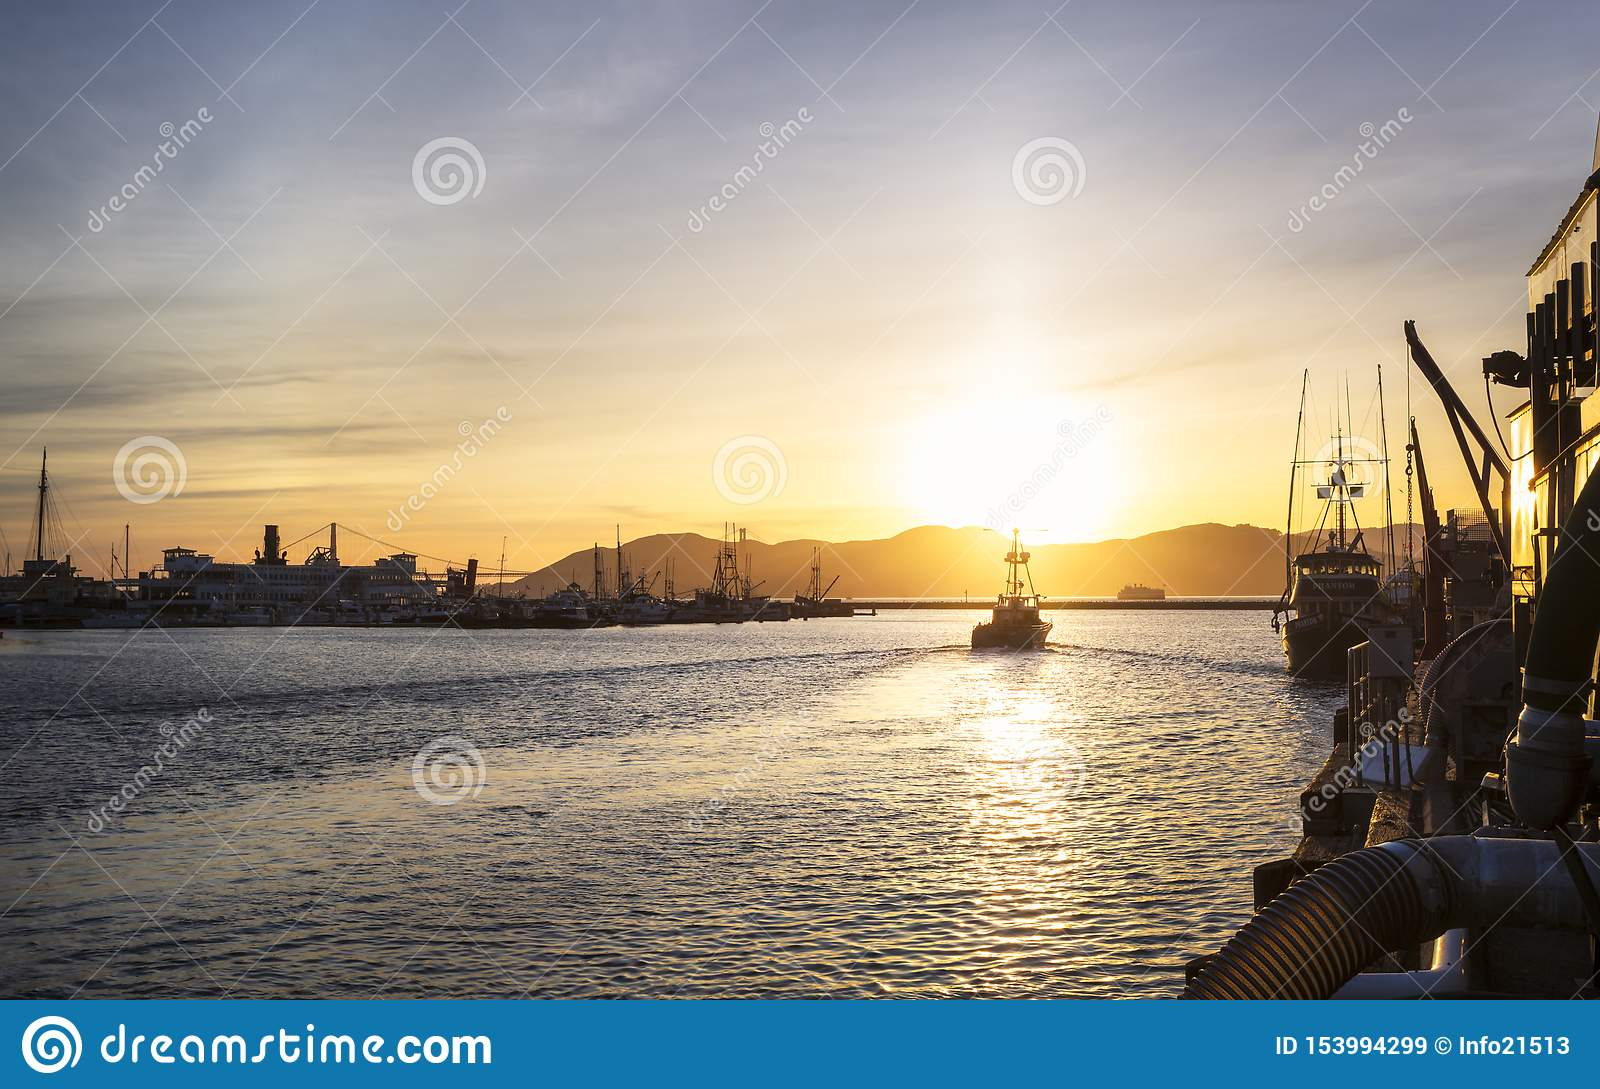 View of Golden Gate Bridge from Fishermans Wharf at sunset, San Francisco, California, United States of America, North